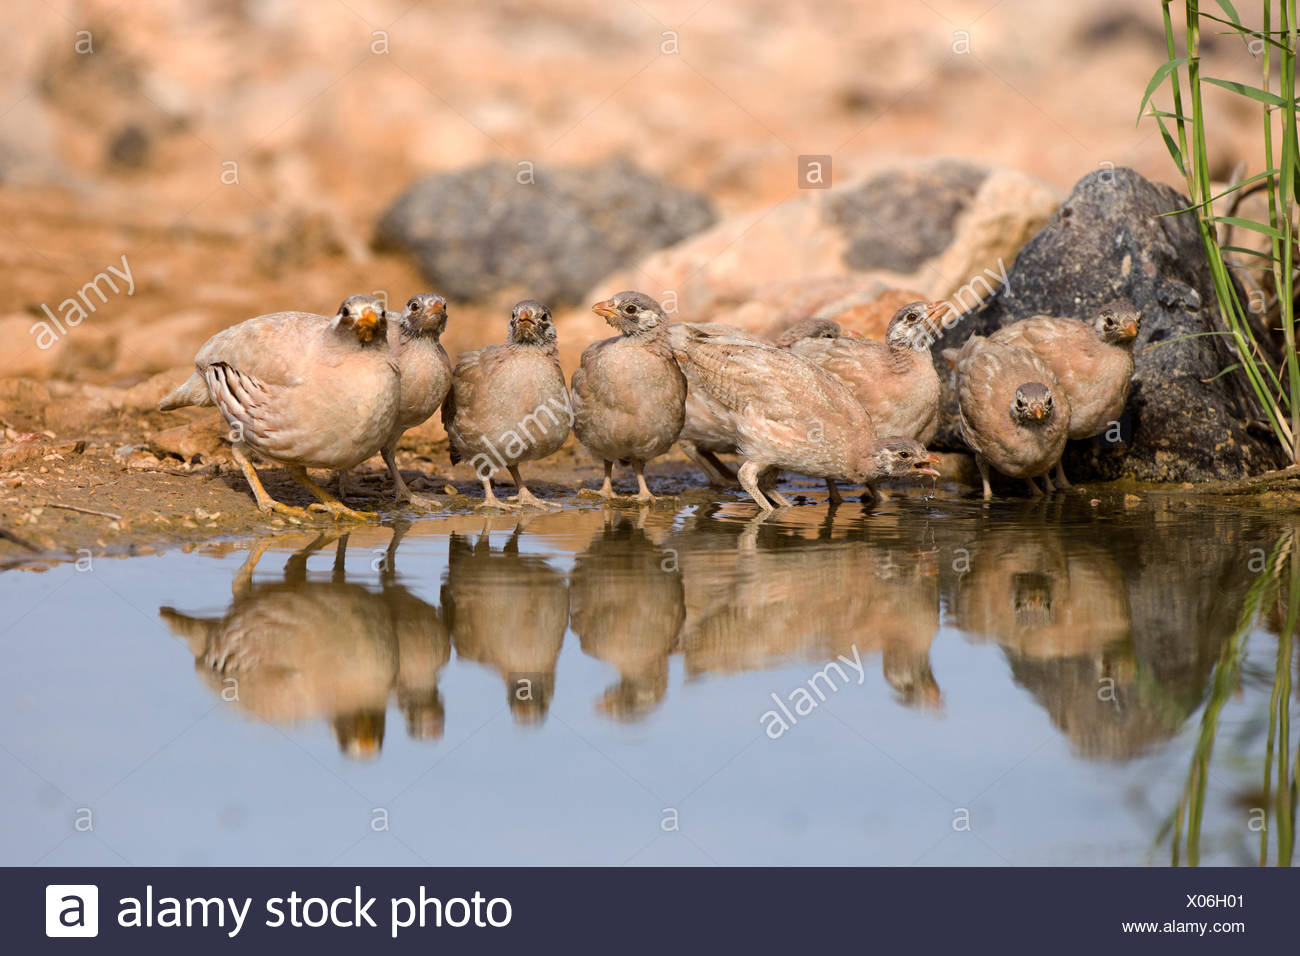 chicks of a sand partridge (Ammoperdix heyi) is a gamebird in the pheasant family Phasianidae of the order Galliformes, gallinac - Stock Image